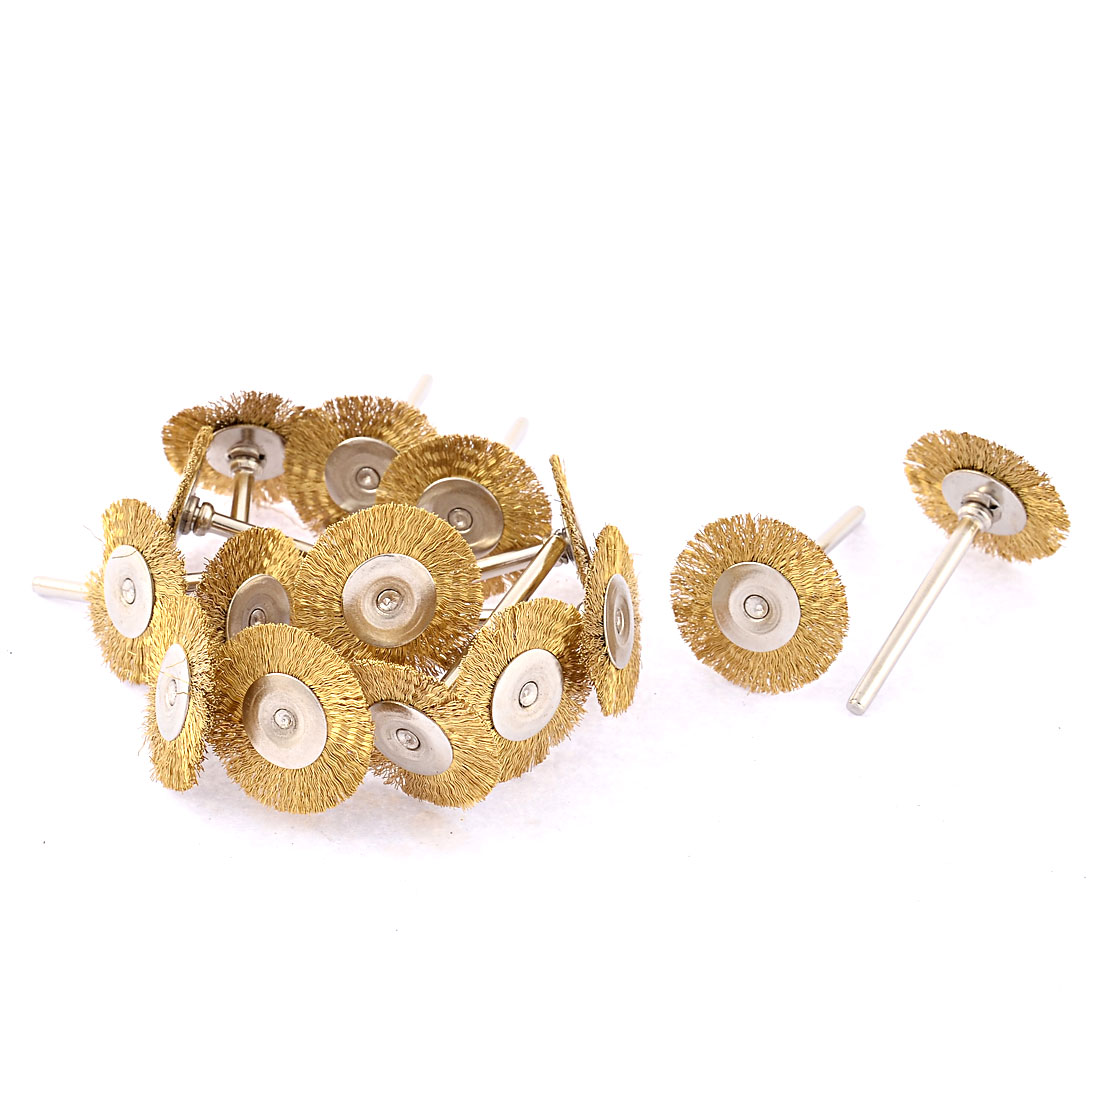 15 Pcs 3mm Shank 25mm Dia Copper Wire Electric Drill Polish Buffing Wheel